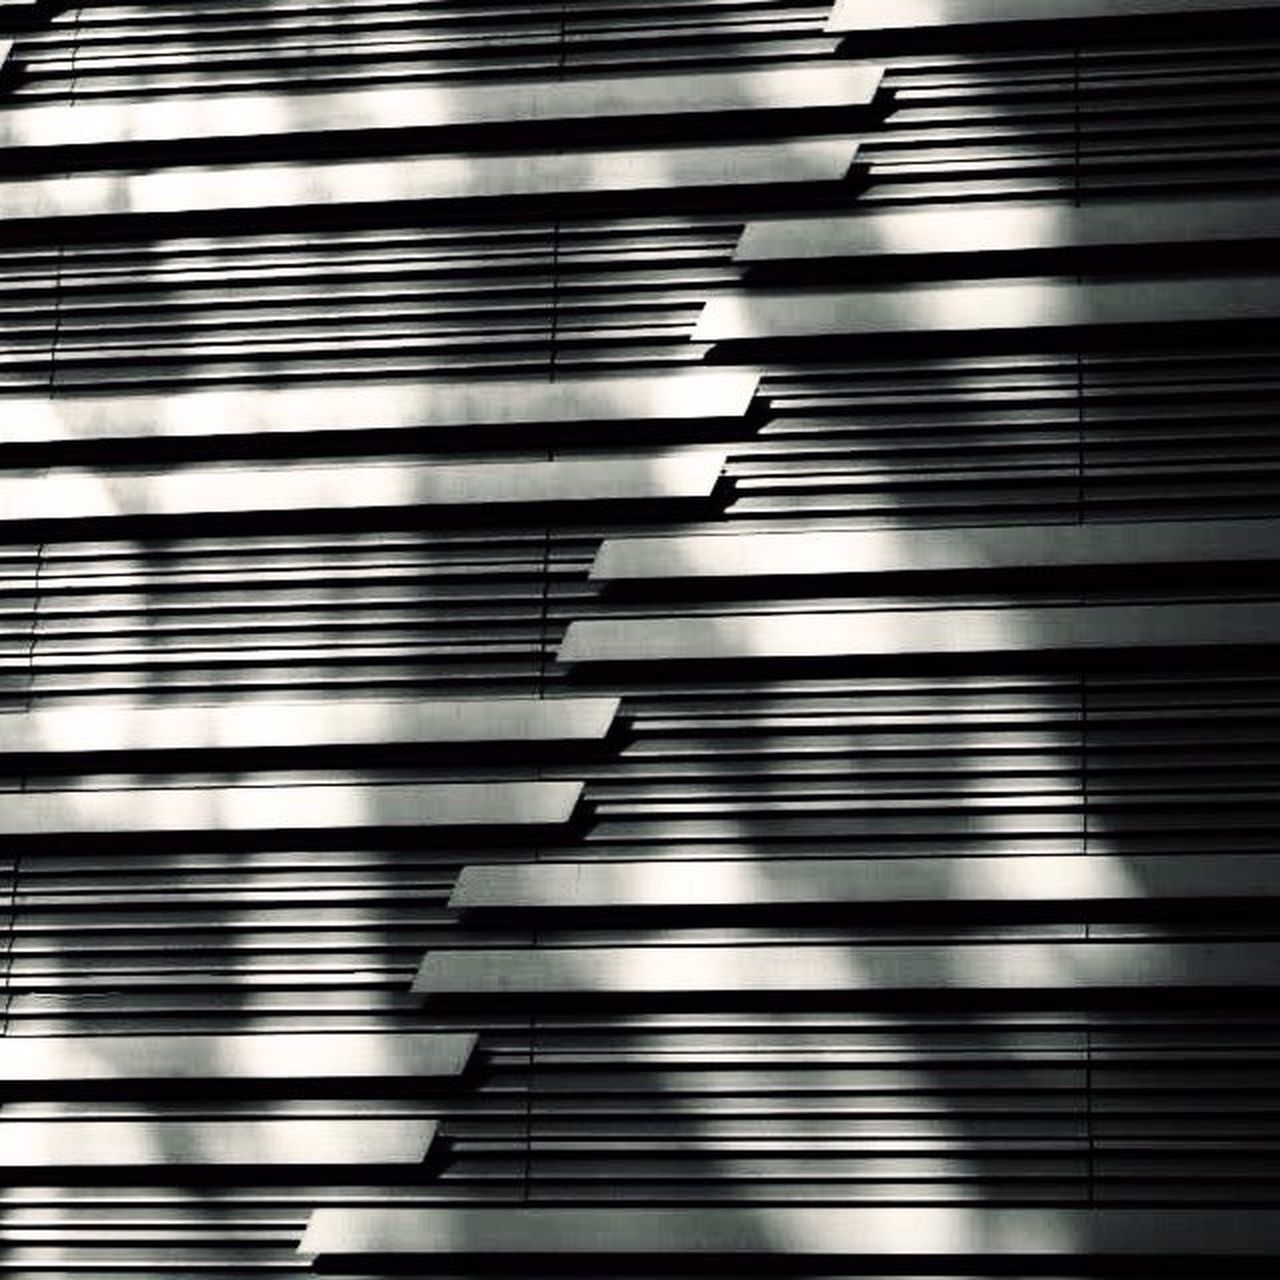 striped, pattern, backgrounds, blinds, full frame, indoors, no people, day, corrugated iron, close-up